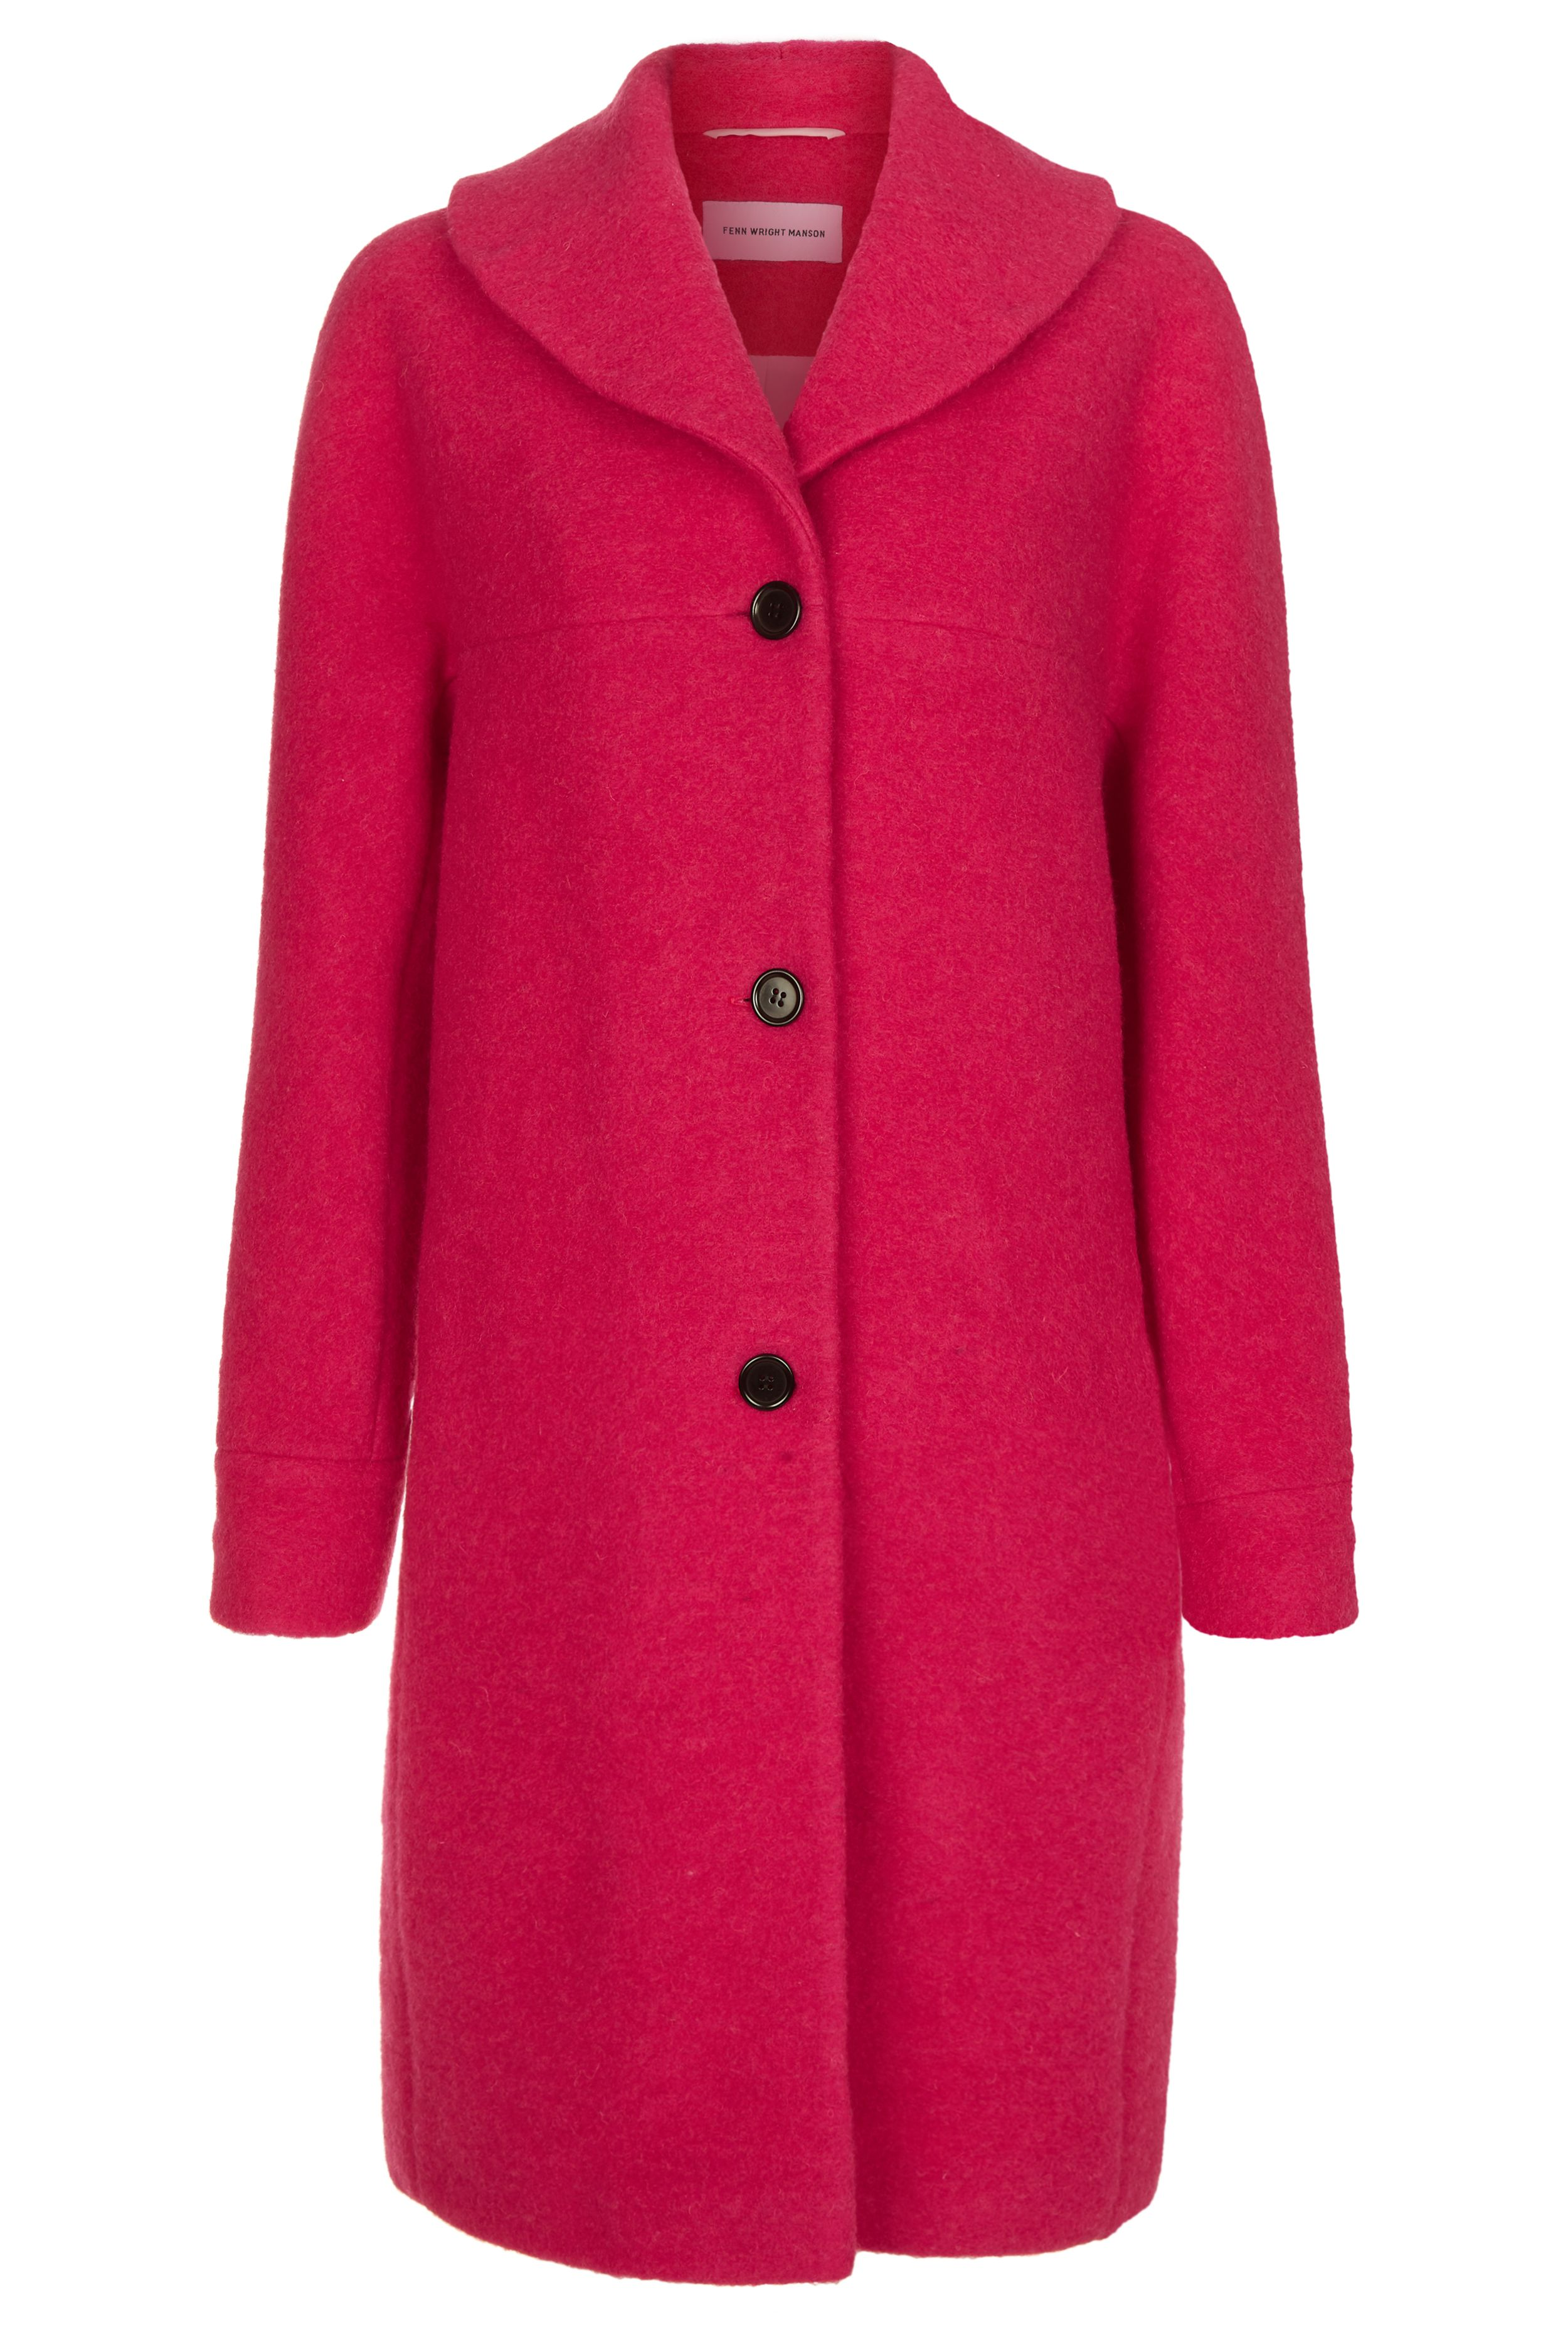 Fenn Wright Manson Rose Coat, Pink